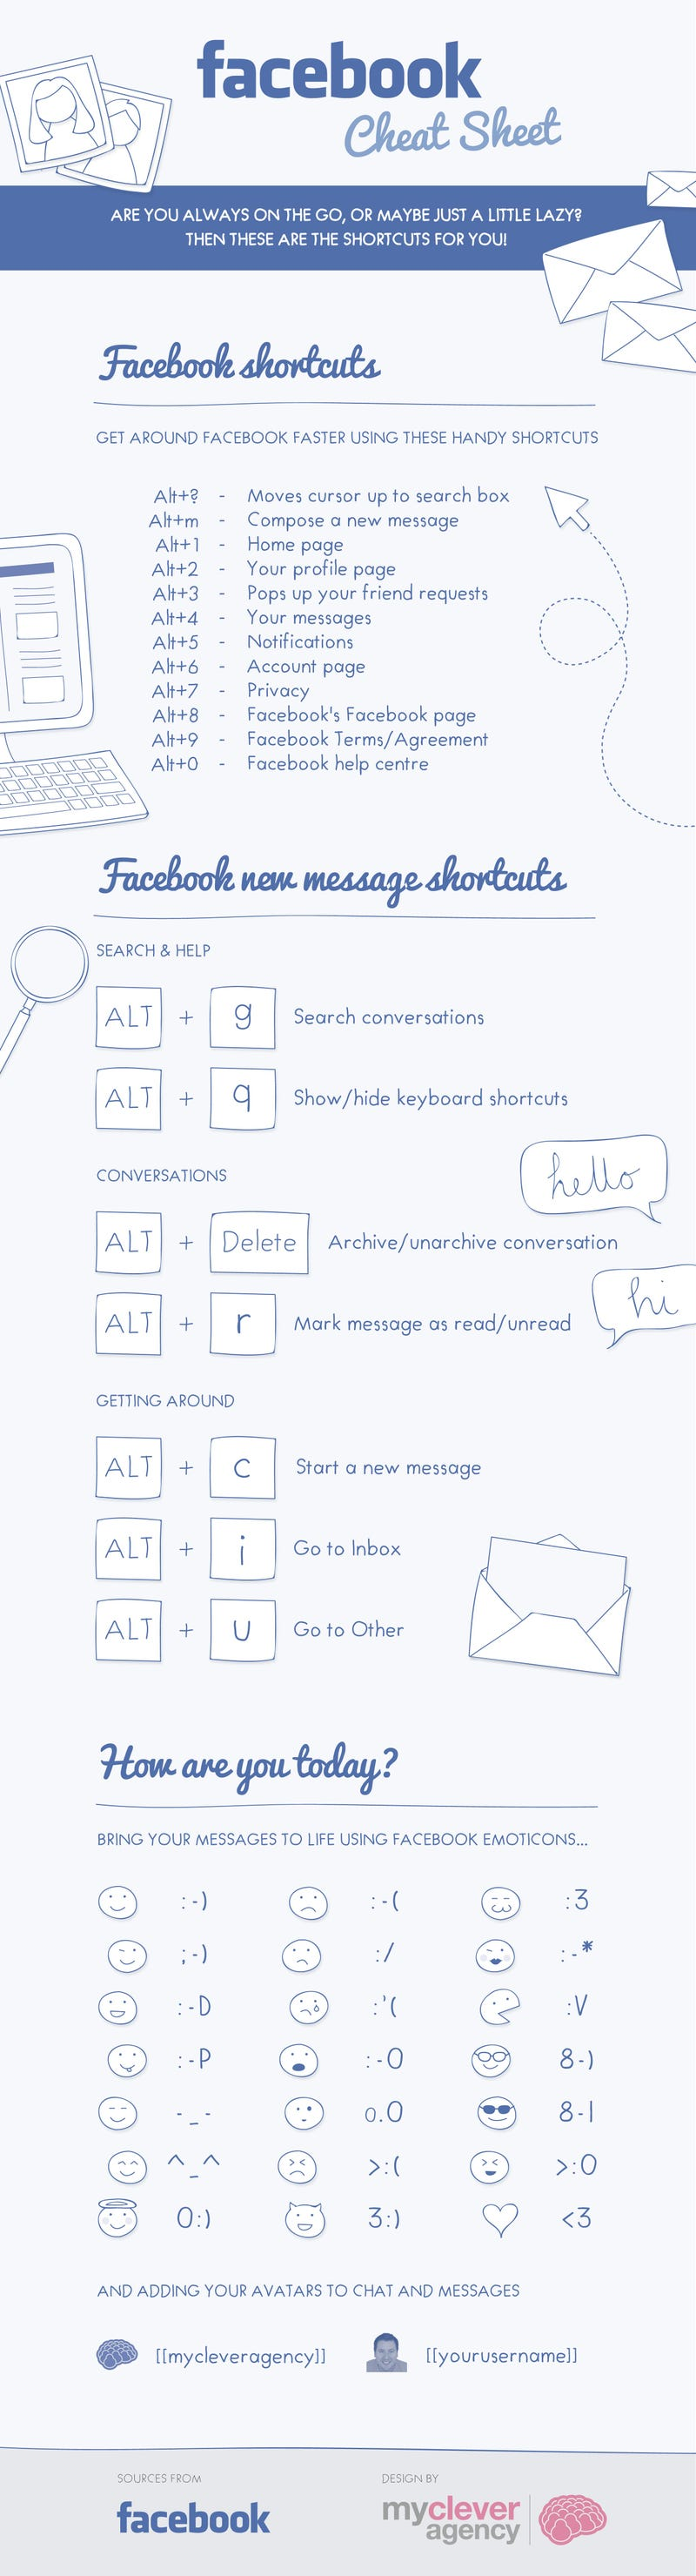 The Facebook Cheat Sheet Shows All the Facebook Keyboard Shortcuts